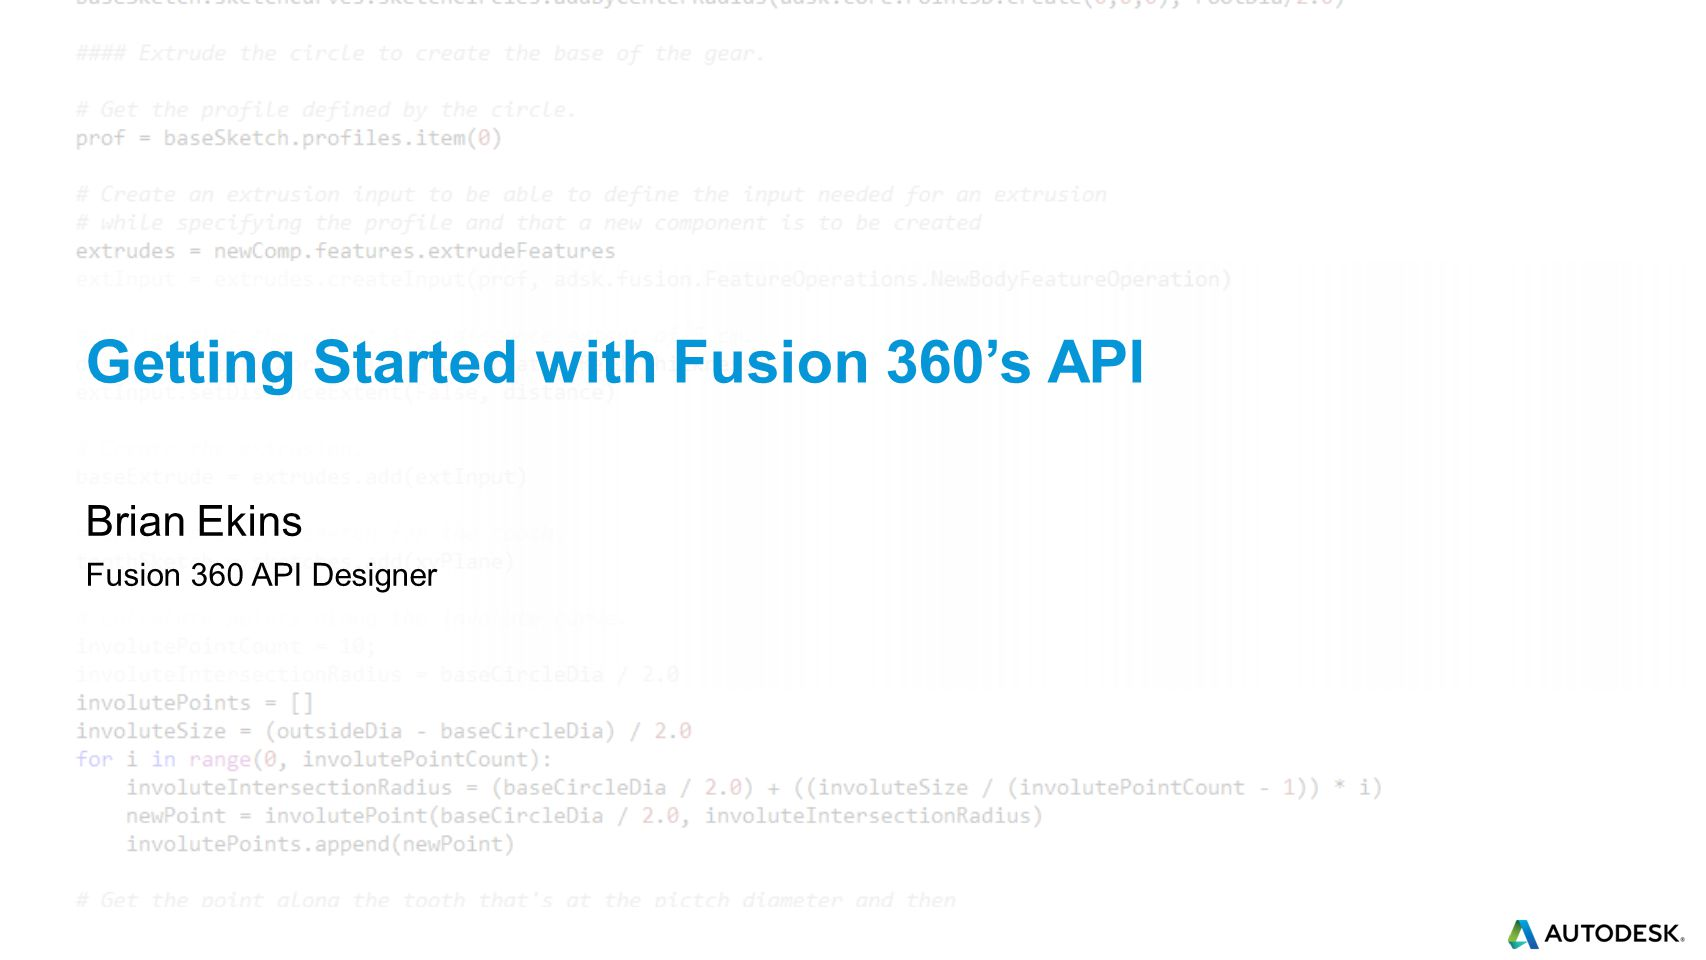 Getting Started with Fusion 360's API